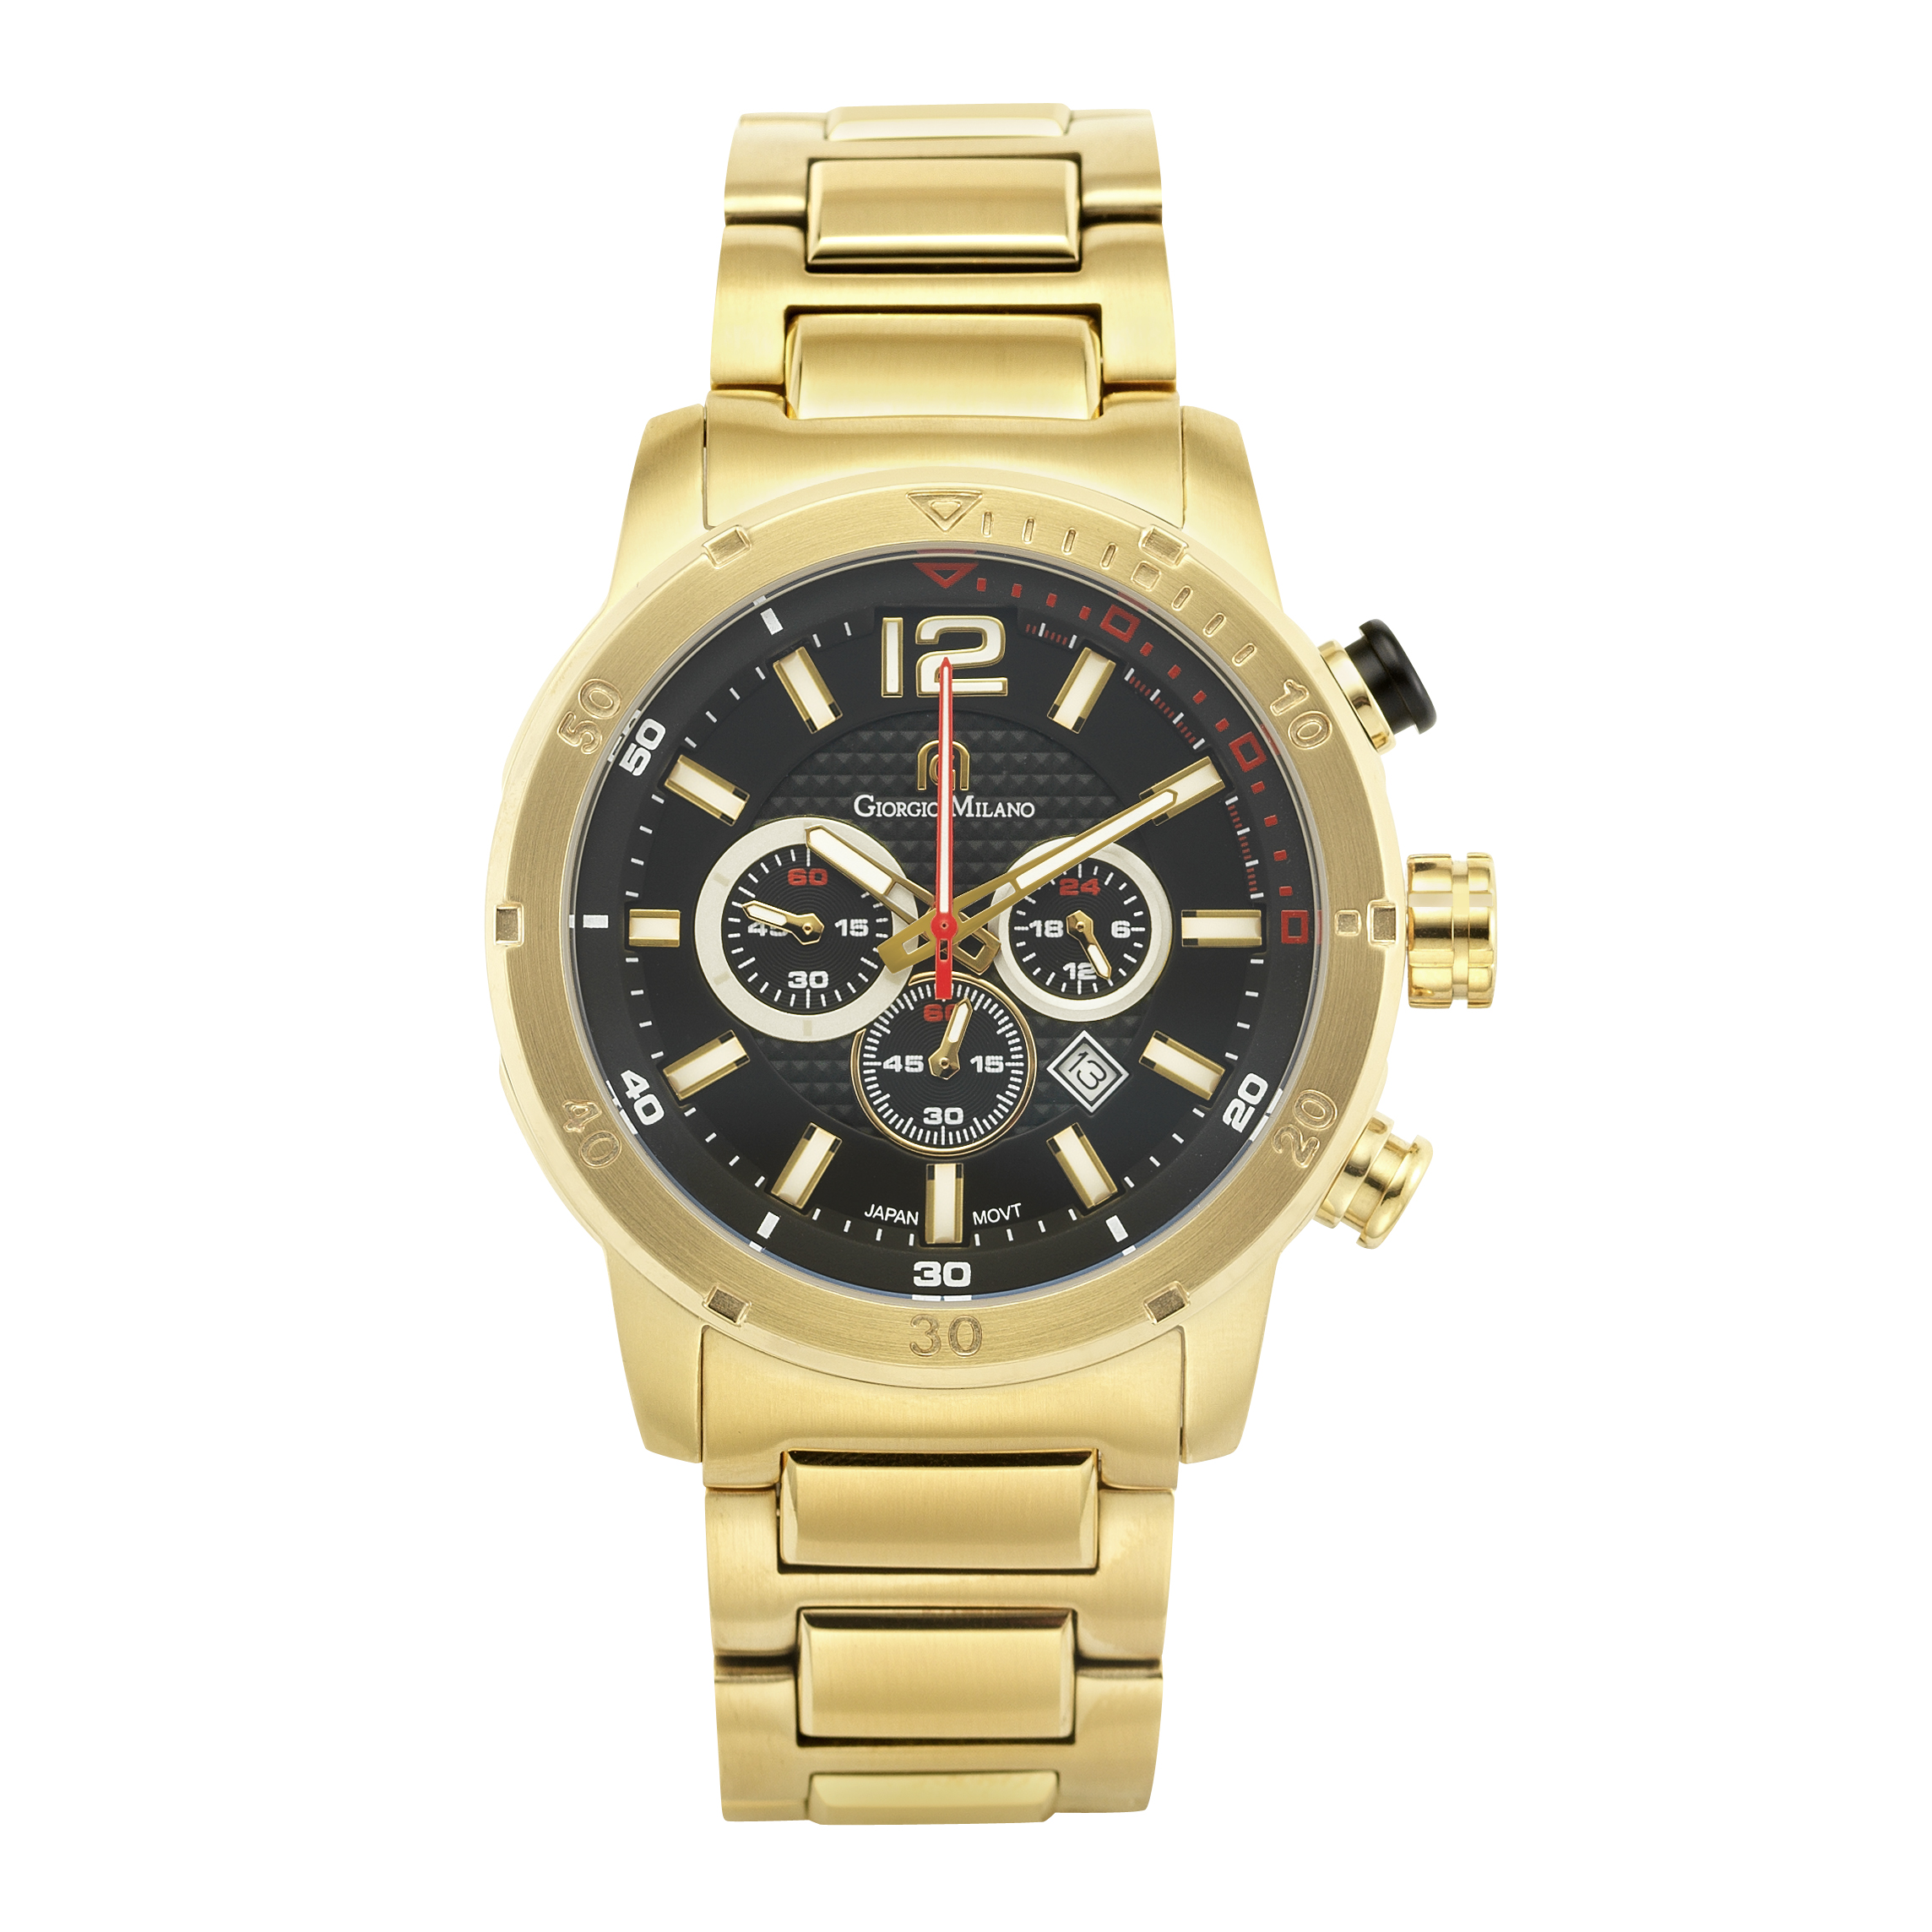 LAGUNA - Men's Giorgio Milano IP Gold Stainless Steel Watch with Three Dials & Date